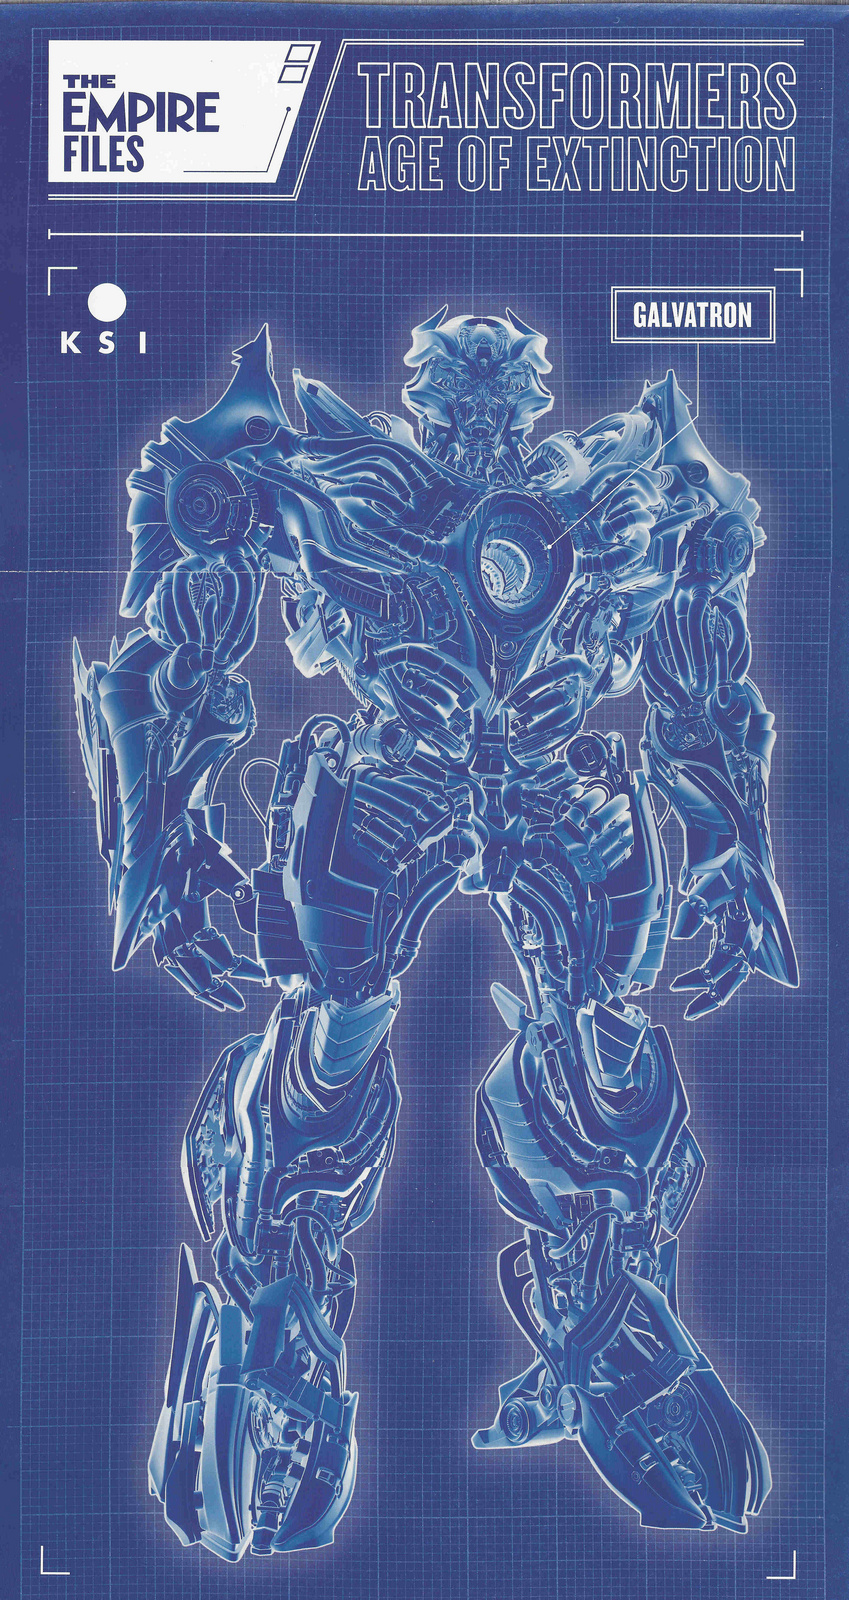 galvatron-exclusive-blueprint-images-from-transformers-age-of-extinction